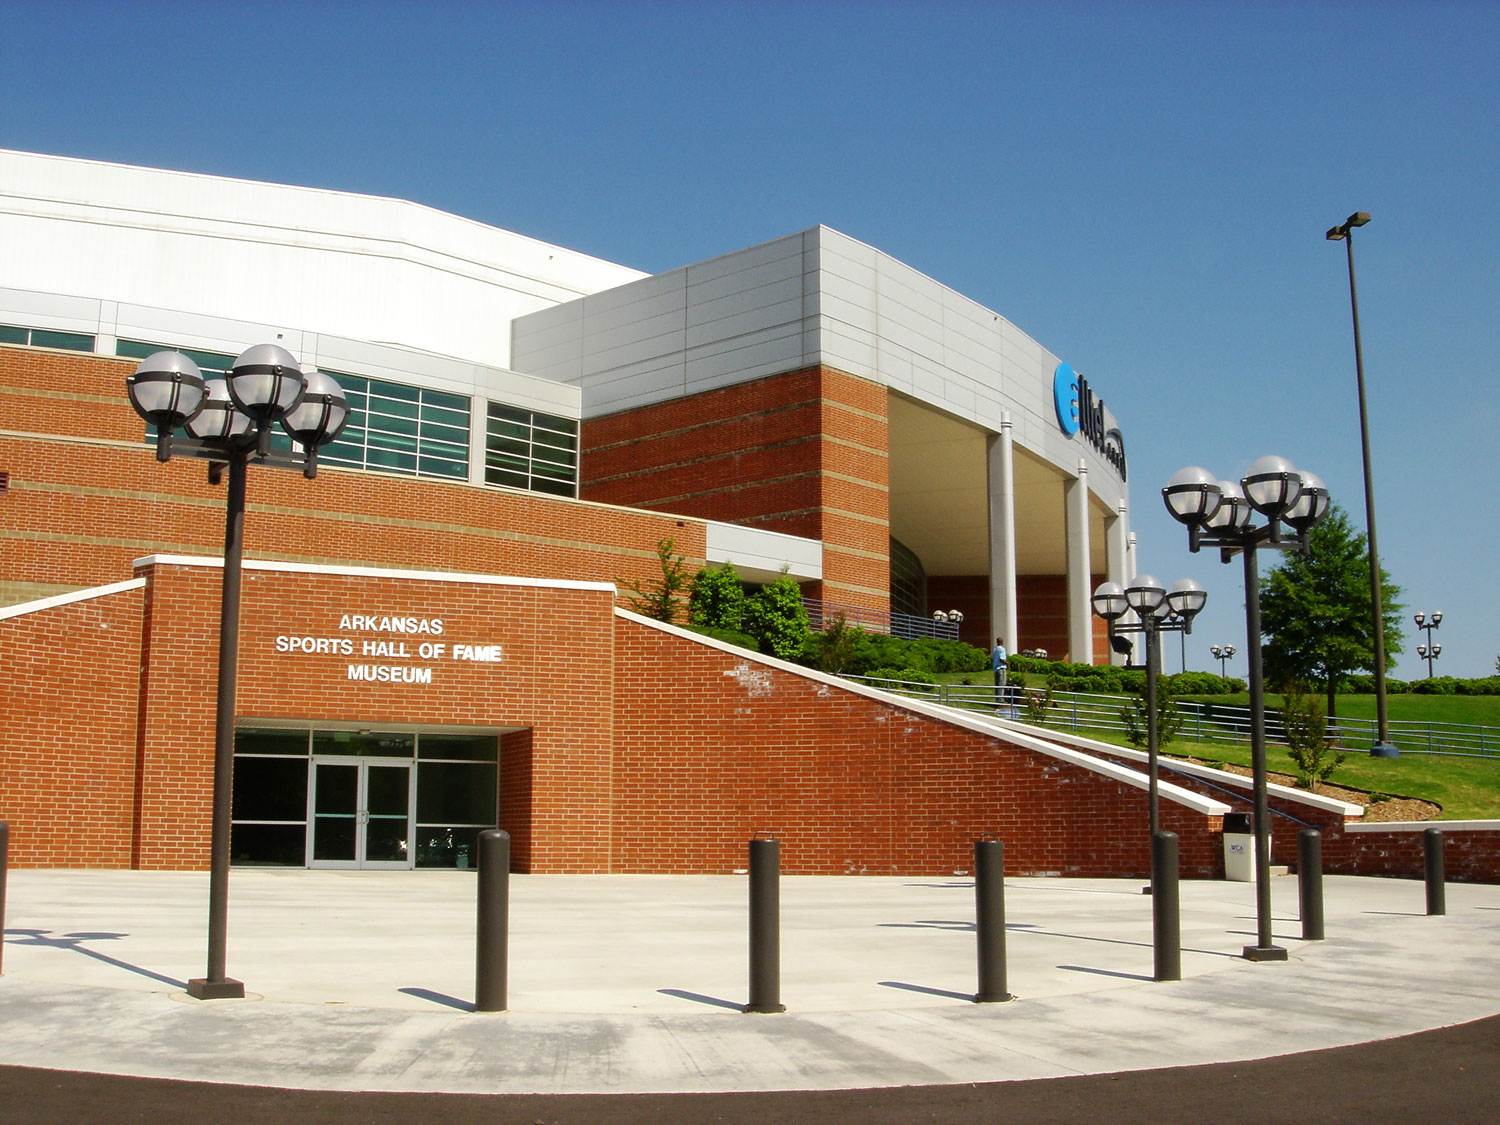 The Arkansas Sports Hall of Fame is located on the west side of the Verizon Arena in North Arkansas